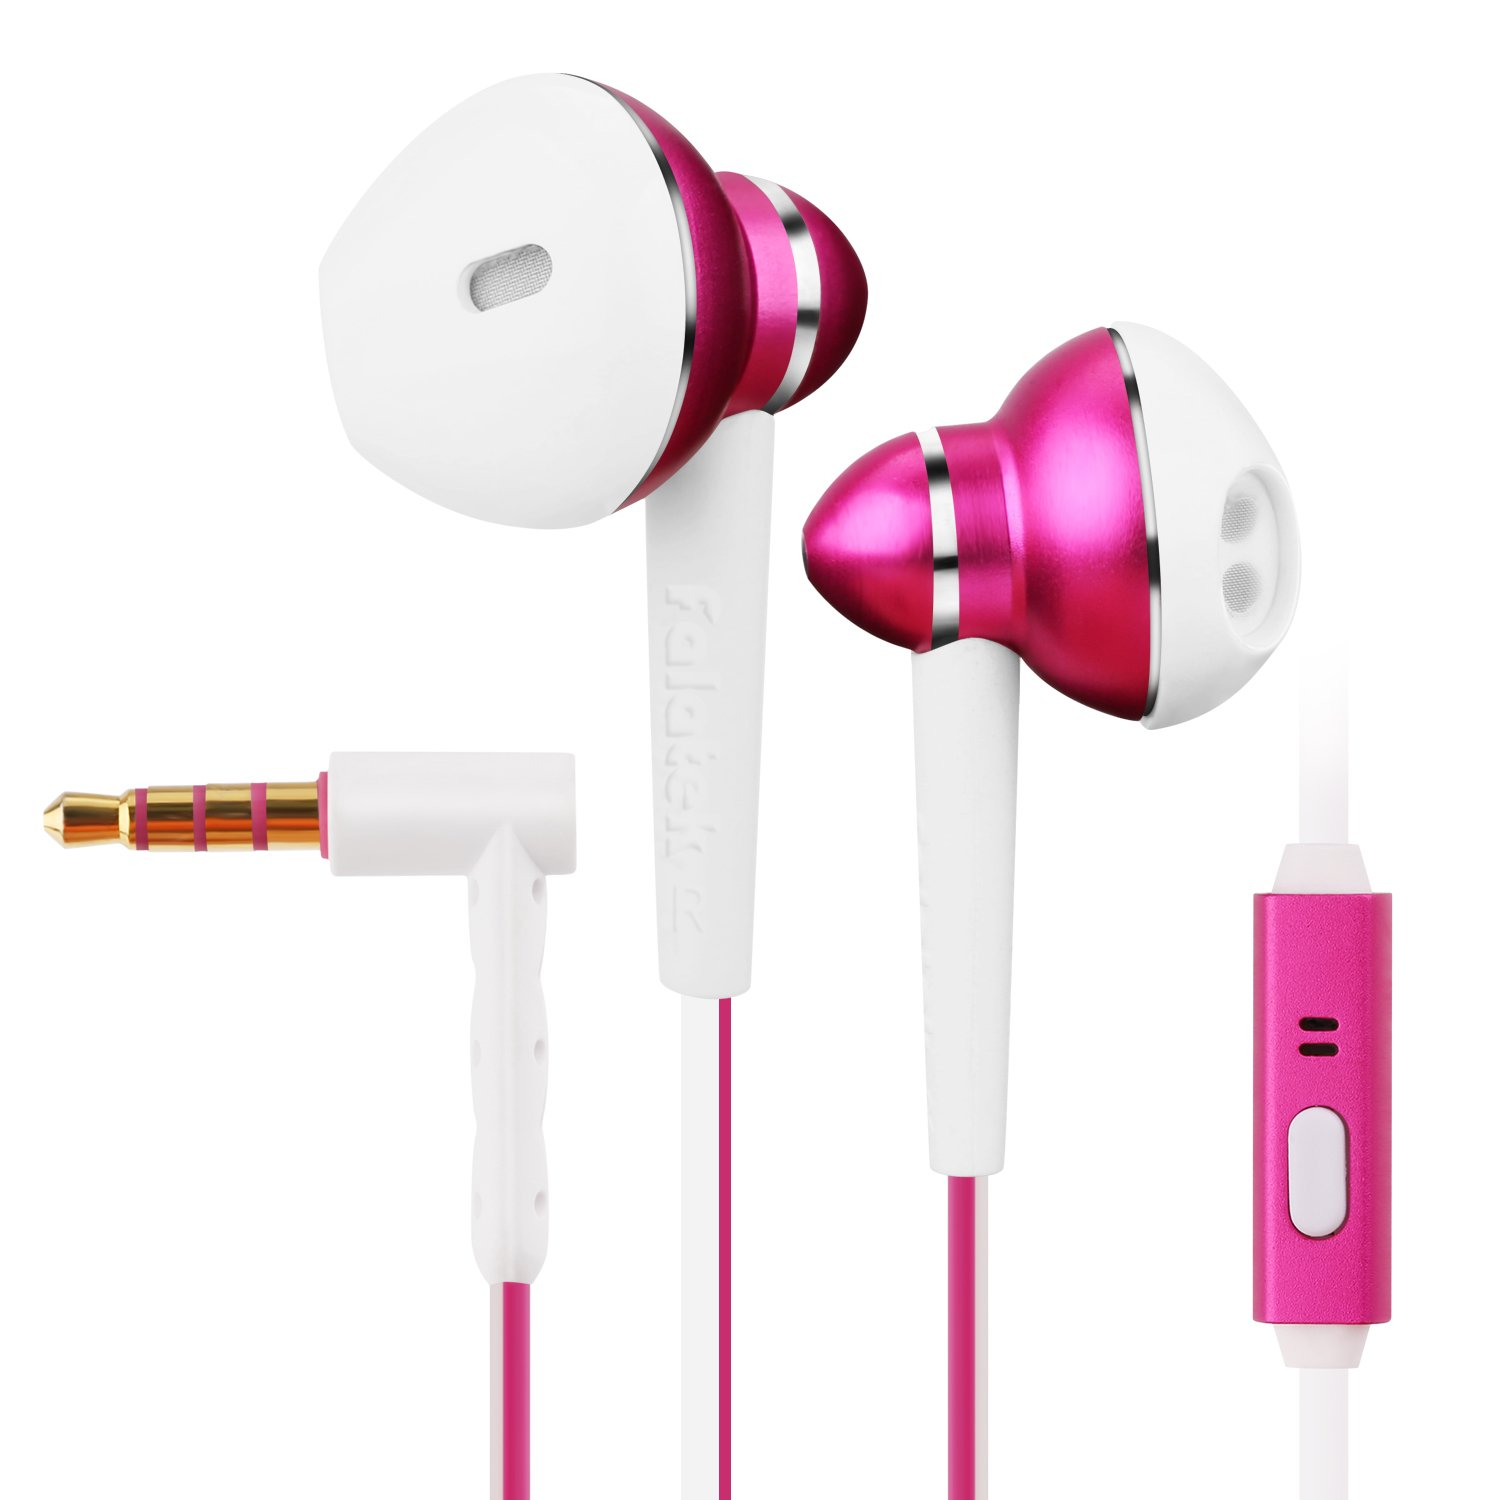 In-Ear Earphones, Falatek Hours Wired Earbuds with Microphone/Powerful Bass Driven Sound/Tangle Free Design / 3.5mm Headphone Jack/Sweat-proof/Powerful Bass